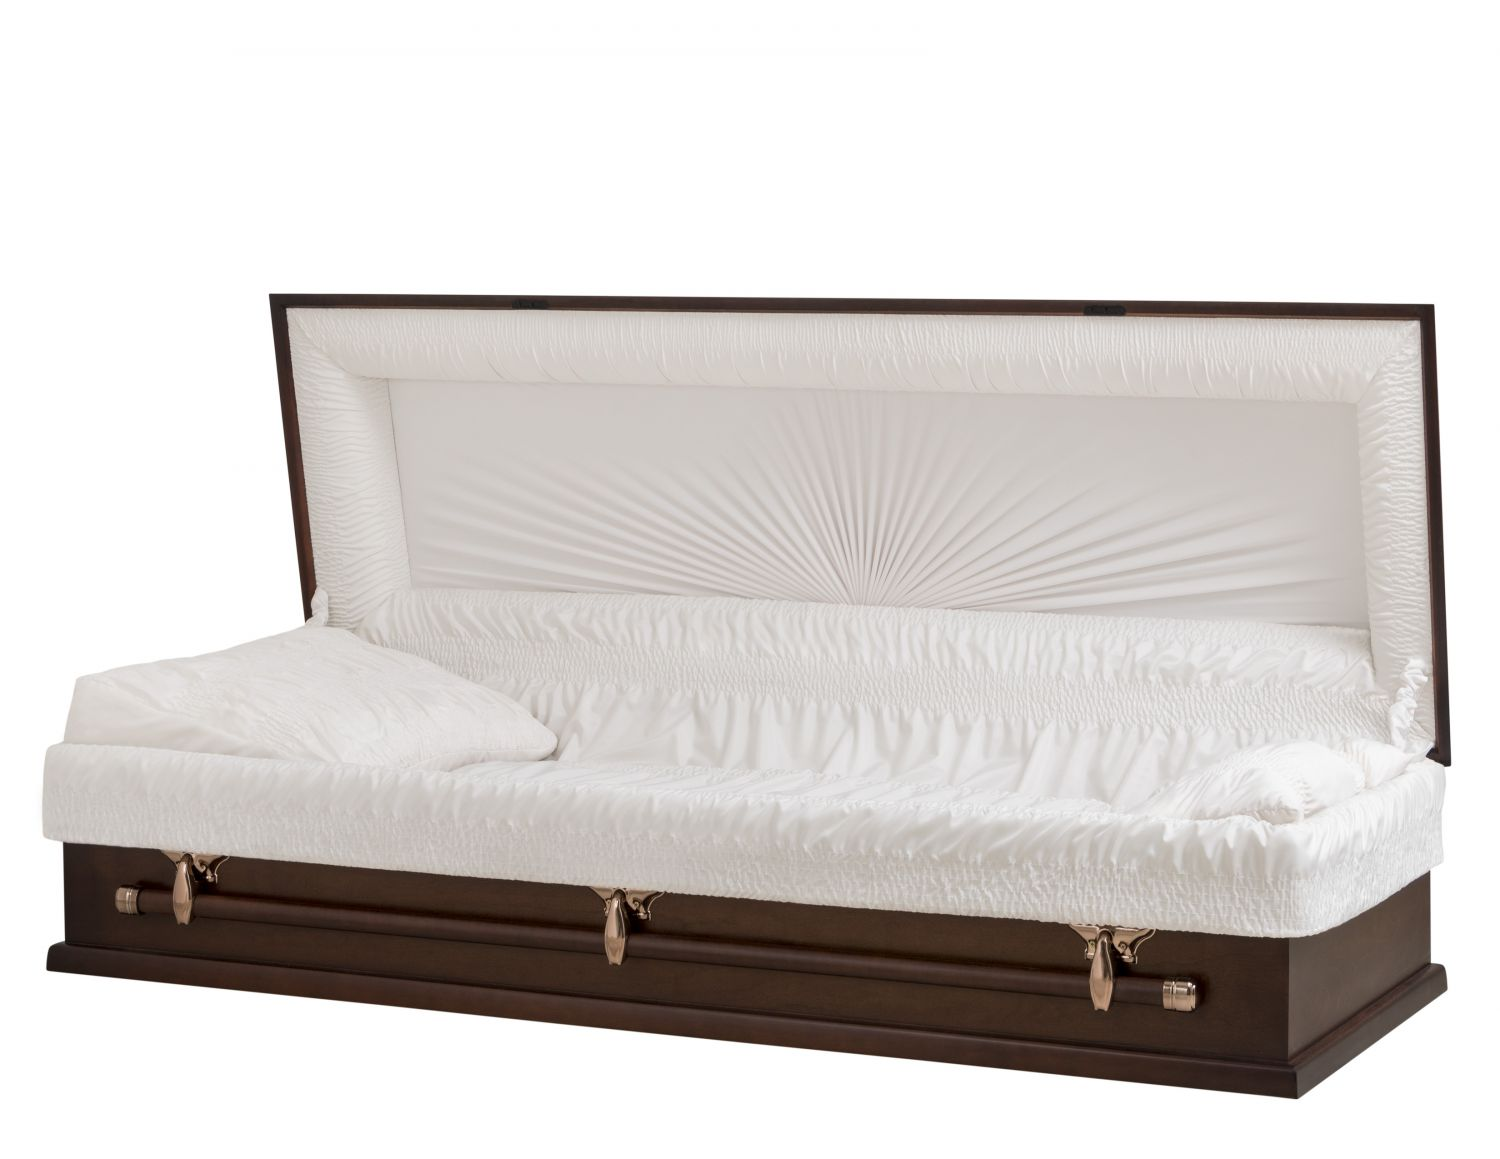 Concept Caskets 10X15-00001-N POPLAR CASKET OPEN GRAIN TAFFETA SOUTH MAHOGANY WOOD FIBER NO H3608C-1    3 X 0 COPPER